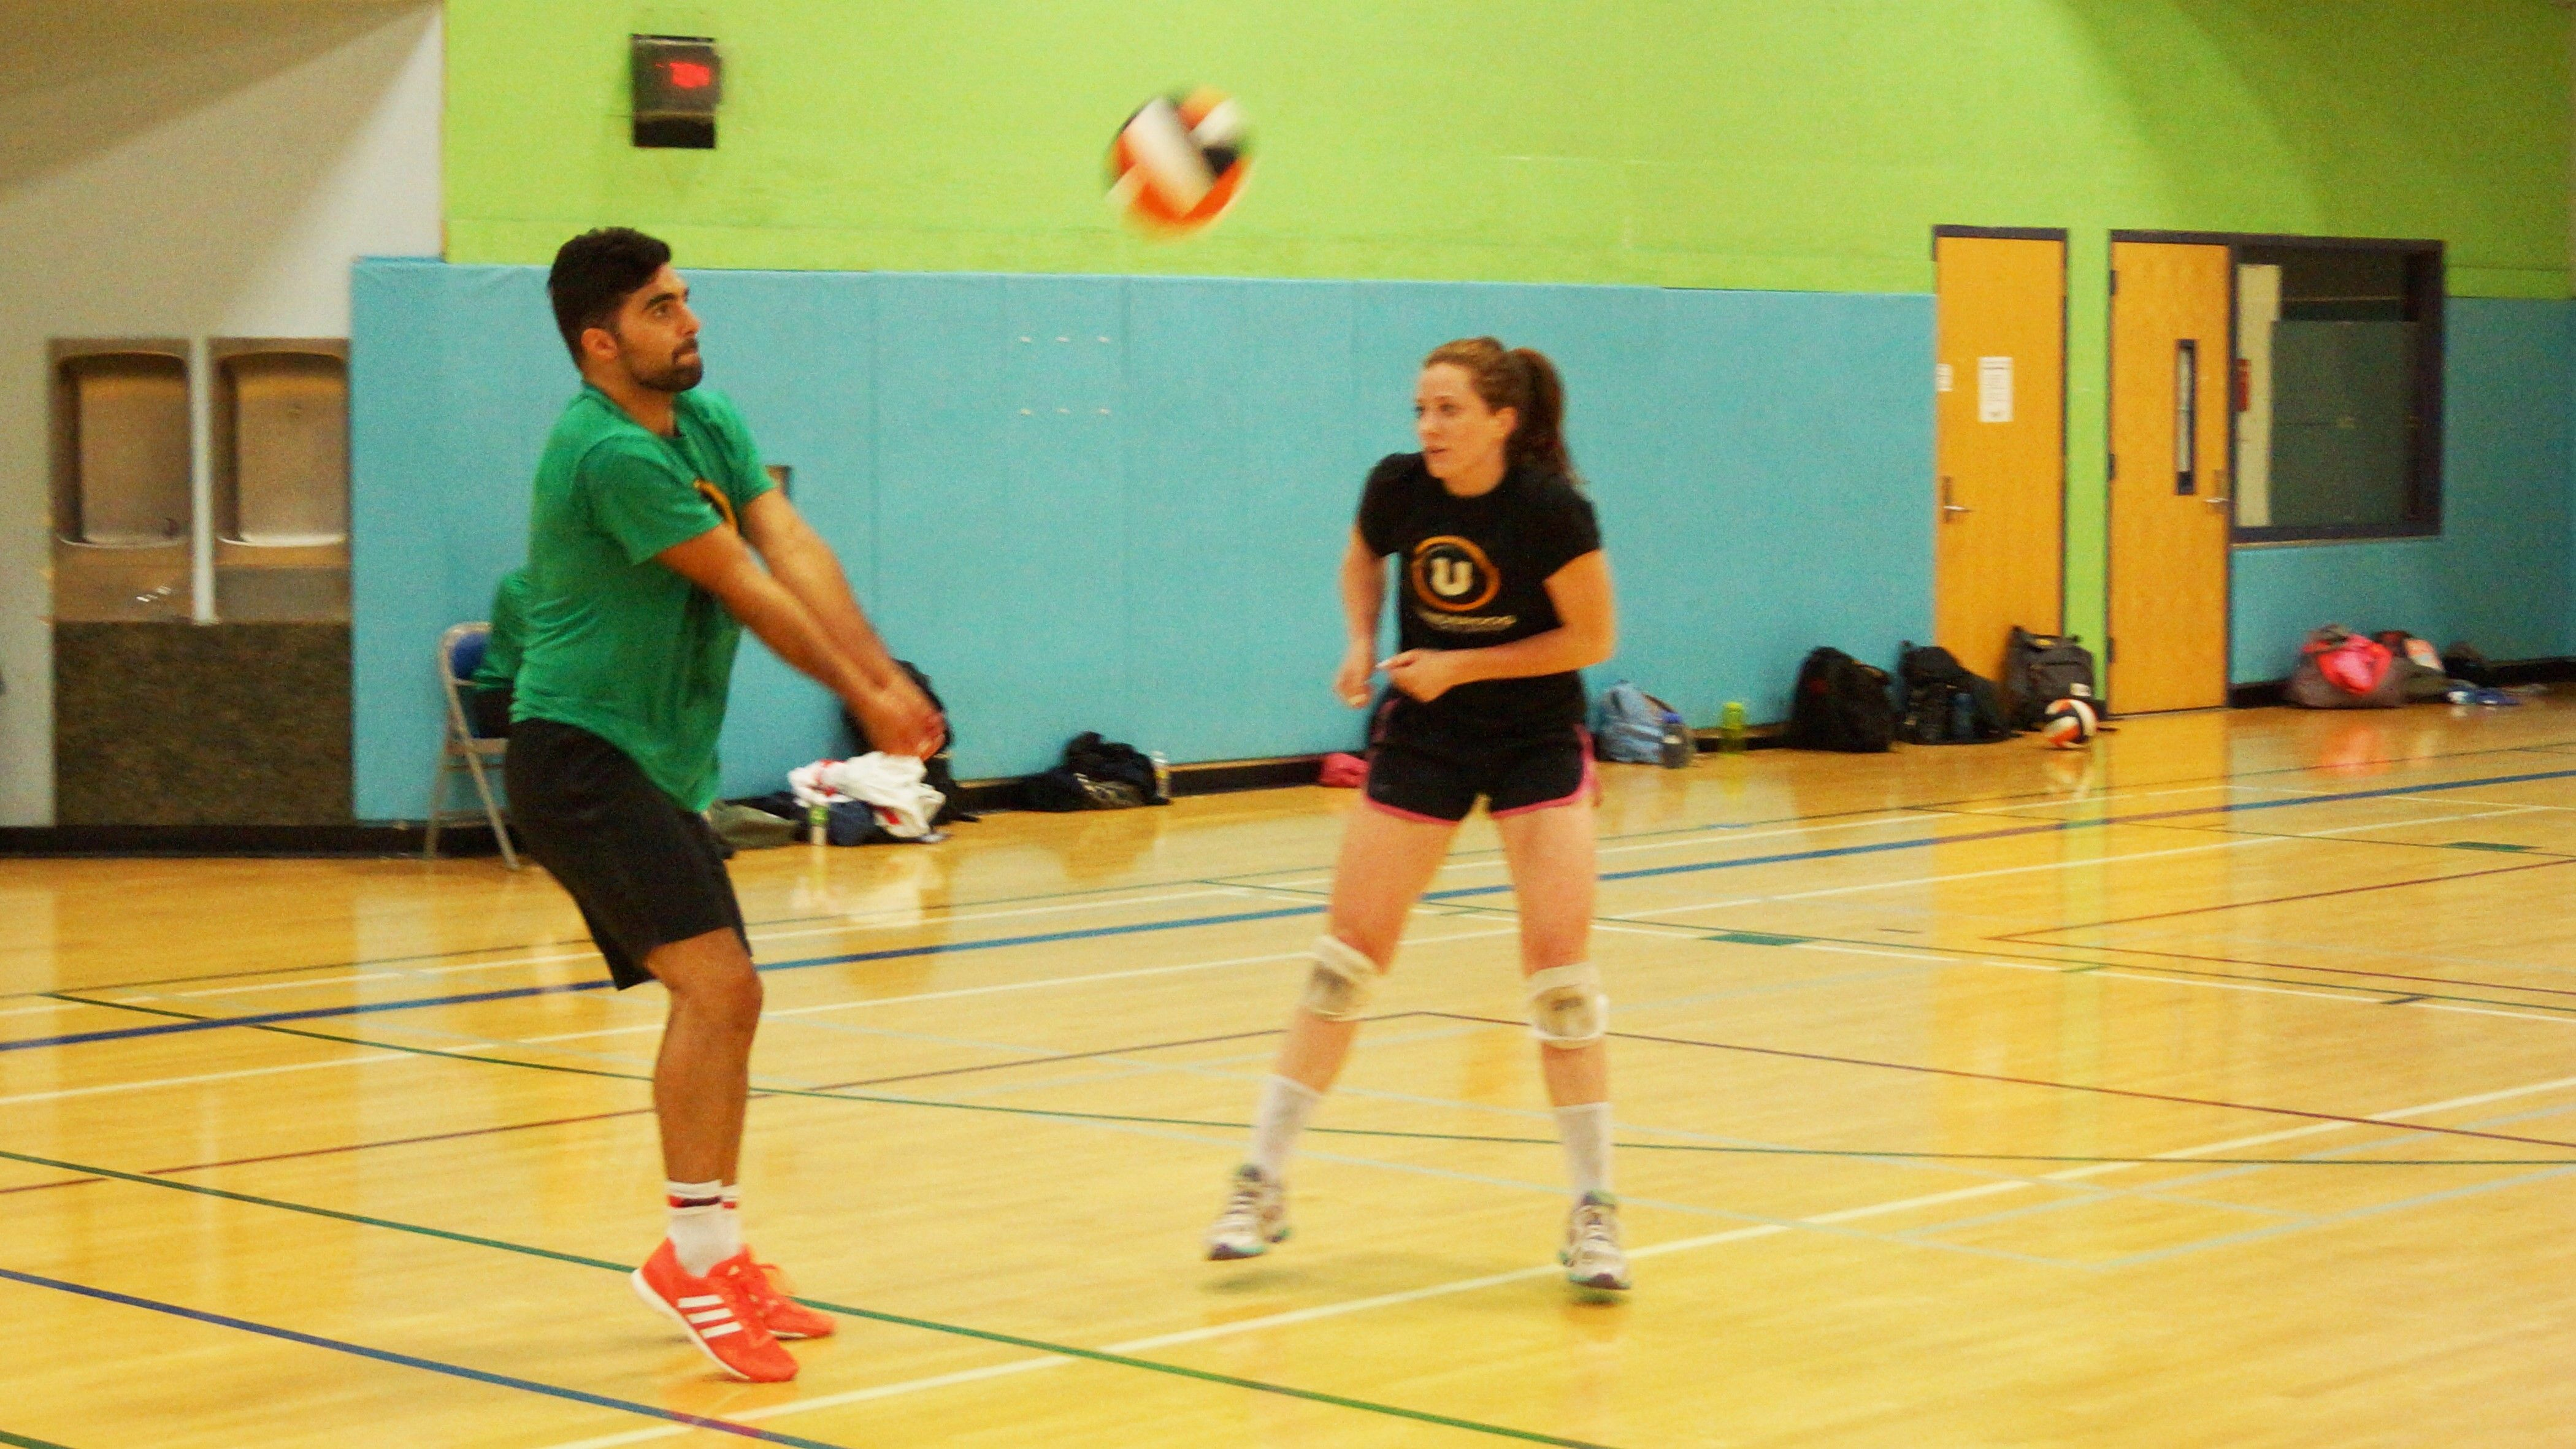 Out on the court with underdog indoor volleyball beach